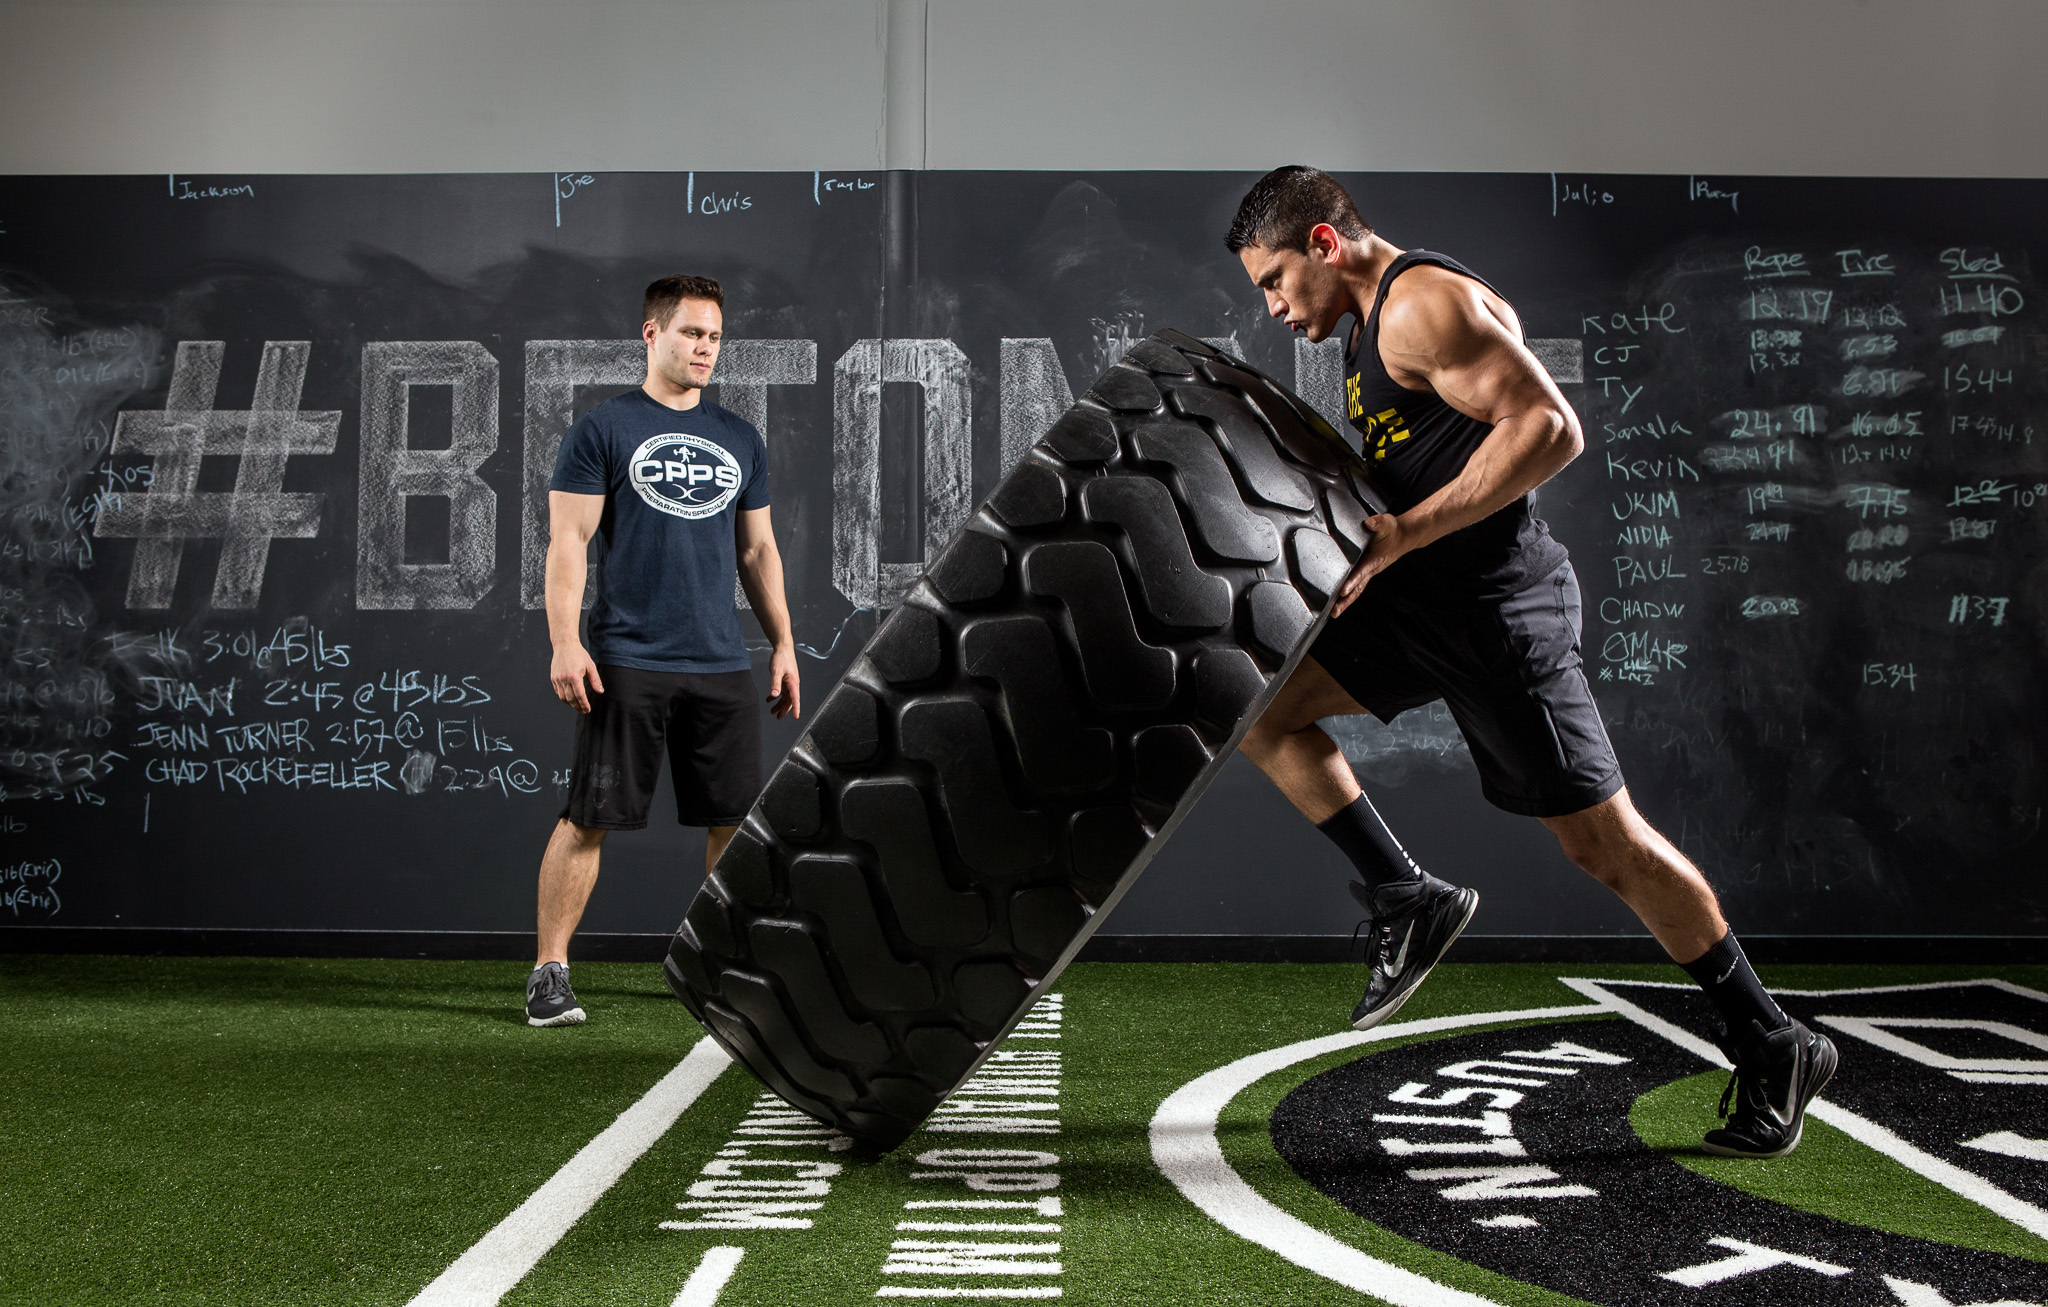 Crossfit Tires Muscle Force Athletes   Stock Photos Images 2048x1307